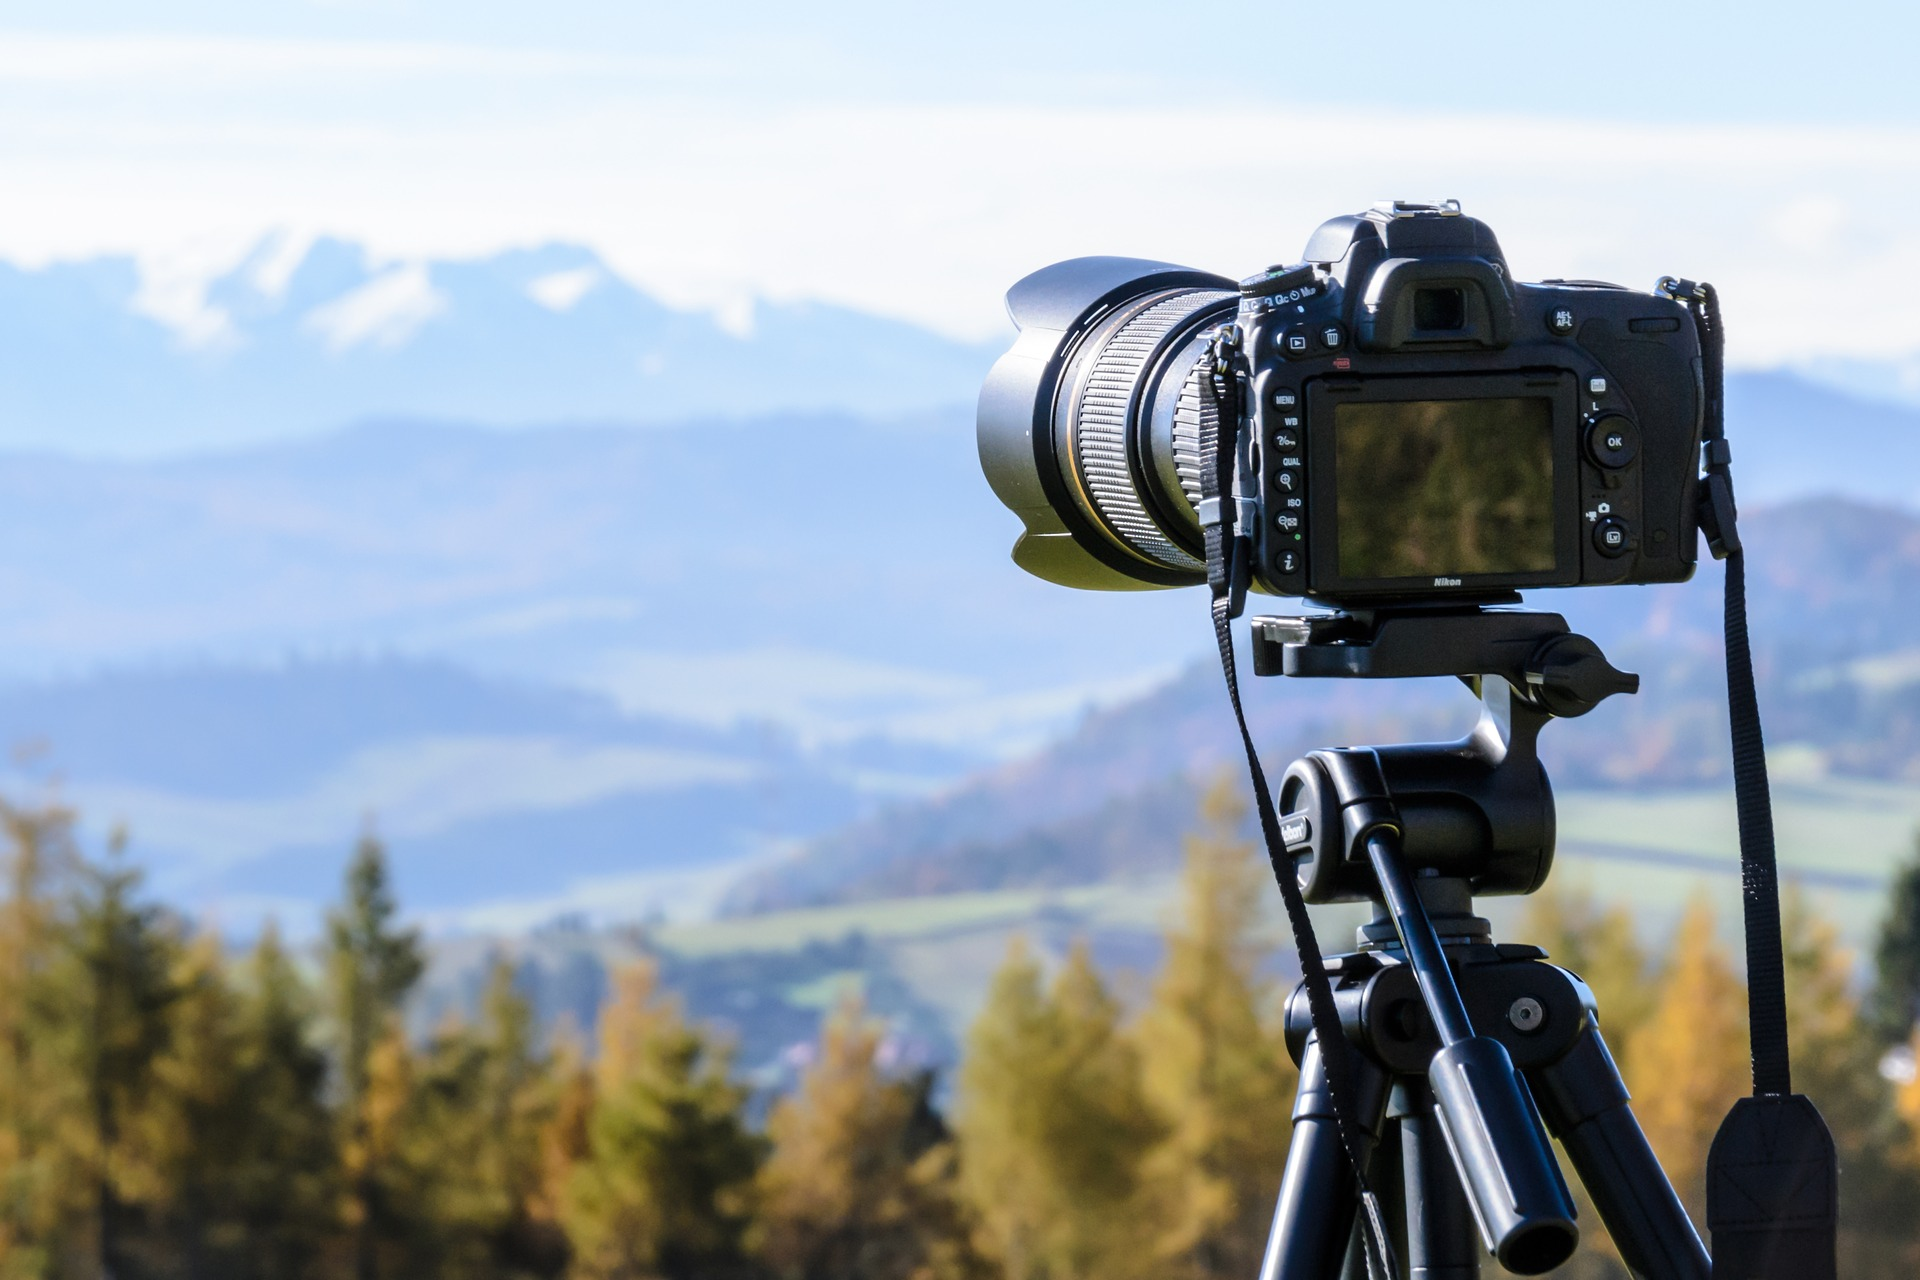 Camera with lens on tripod